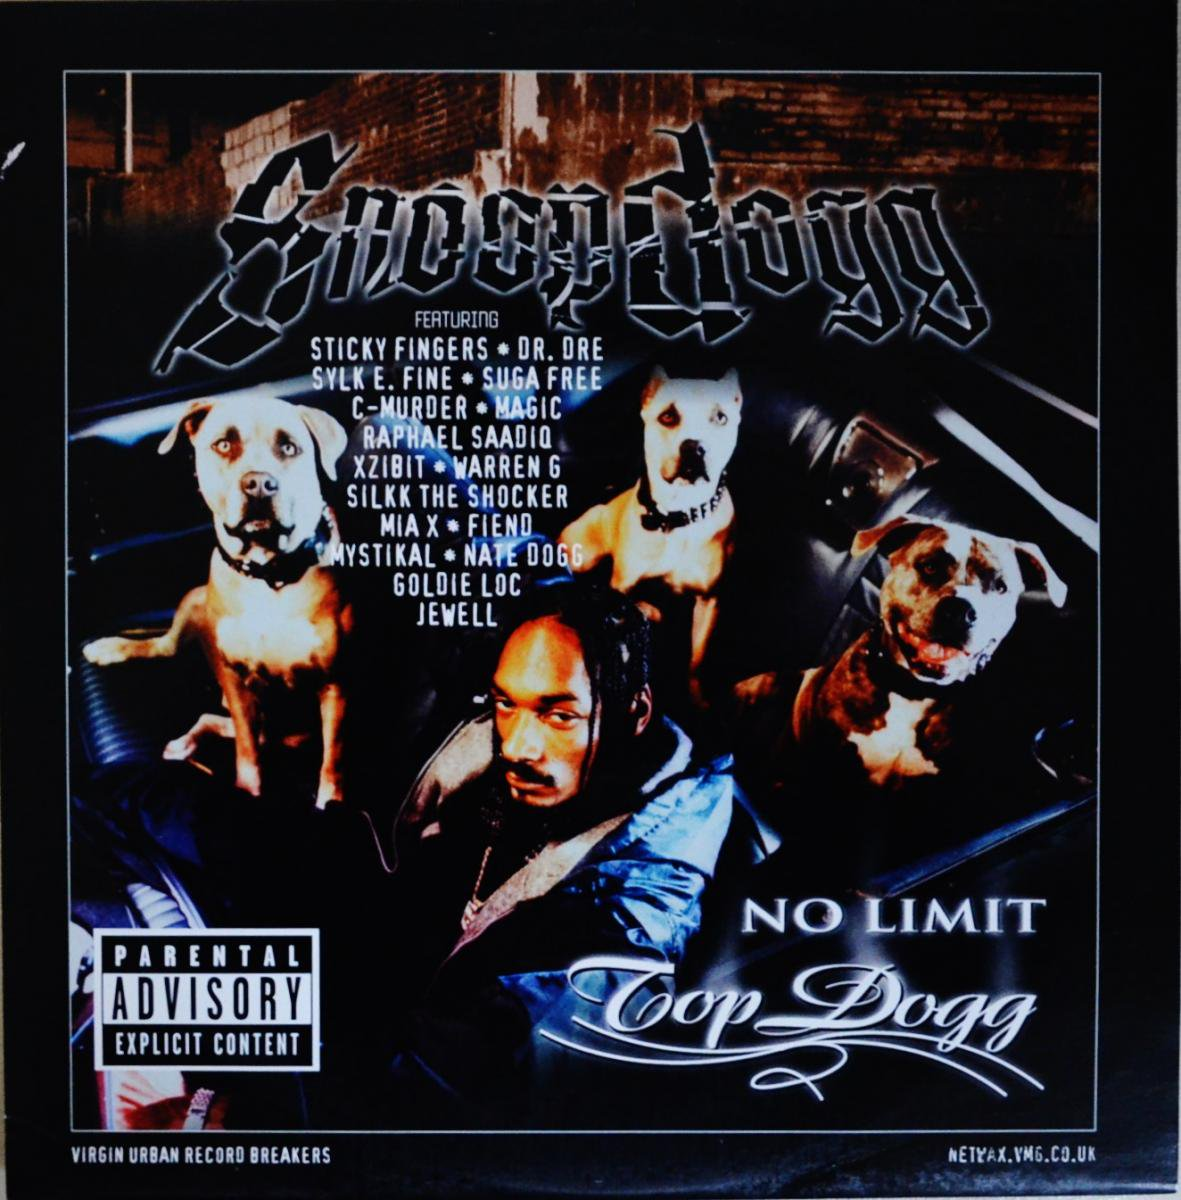 SNOOP DOGG / SOMETHING BOUT YO BIDNESS / DON'T TELL-UK 4 TRACKS EP (NO LIMIT TOP DOGG) (12